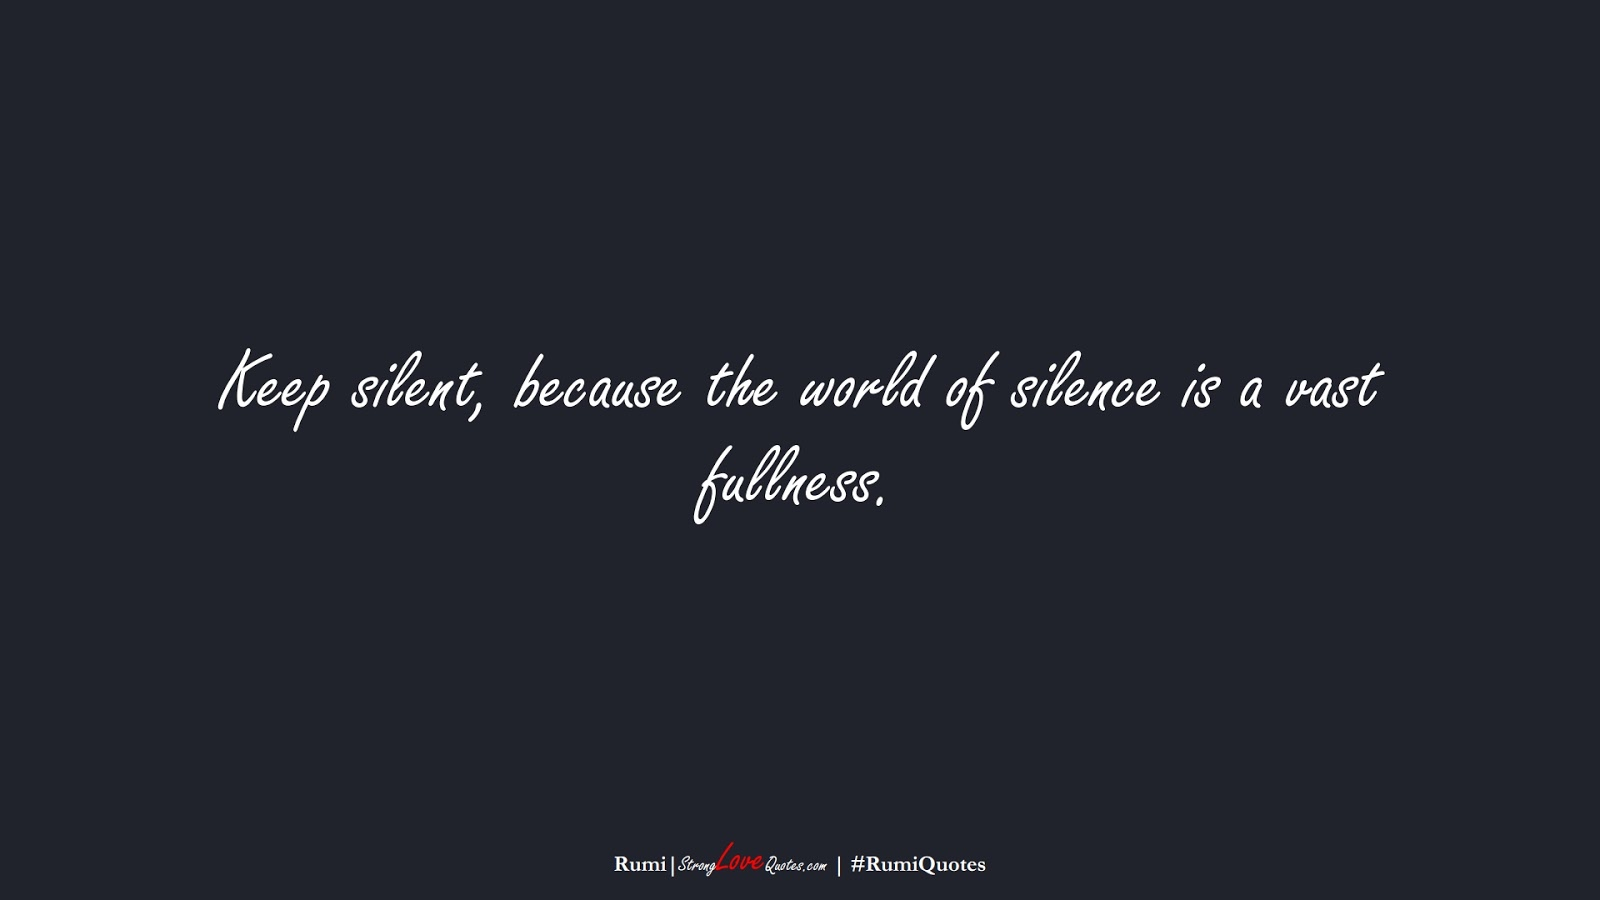 Keep silent, because the world of silence is a vast fullness. (Rumi);  #RumiQuotes